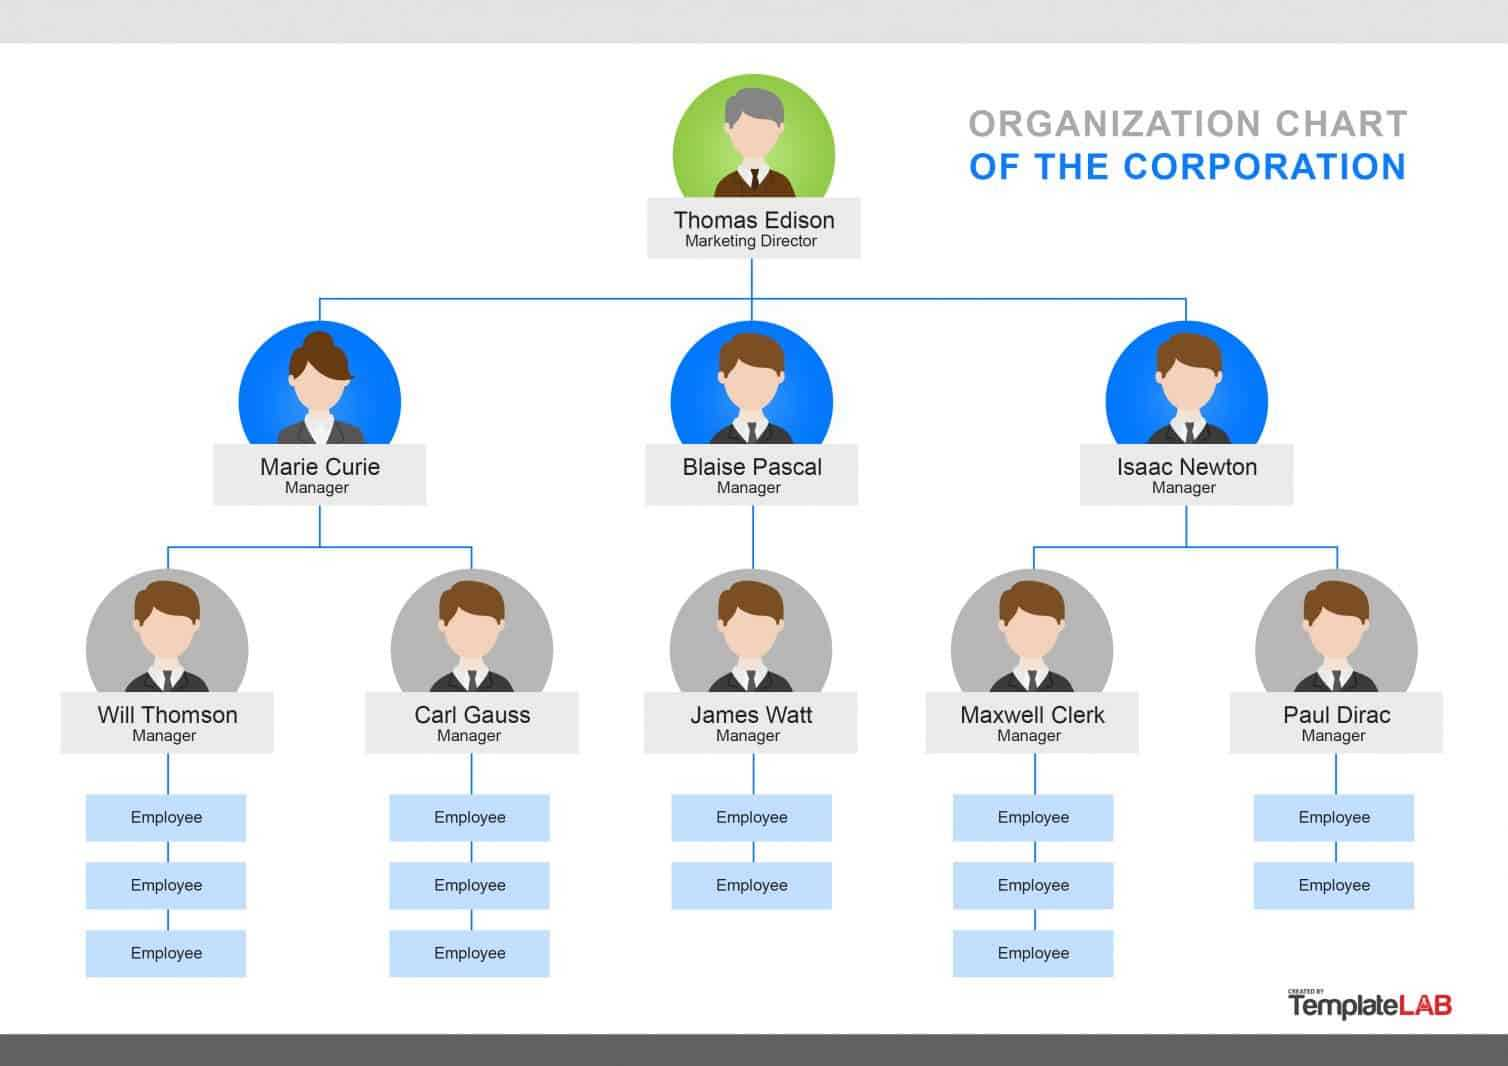 Organization Chart With Photos Template - Cuna Within Organization Chart Template Word